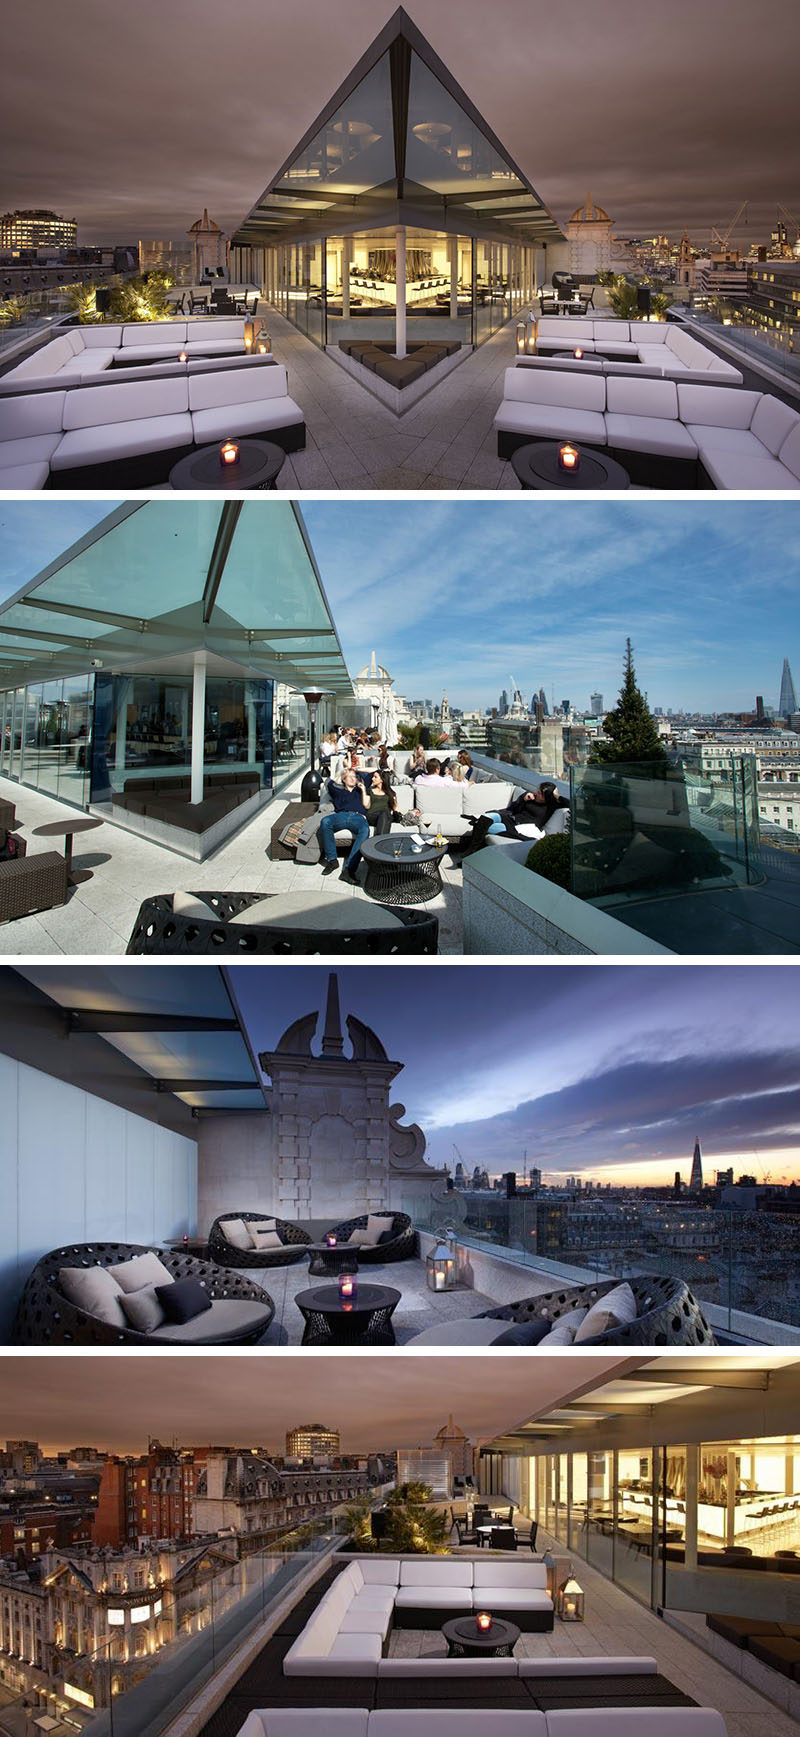 10 Incredible Hotel Rooftops From Around The World // 4. From Radio Rooftop Bar of ME London hotel you get incredible views of all the main attractions, including Trafalgar Square, Tower Bridge, and St. Paul's Cathedral.